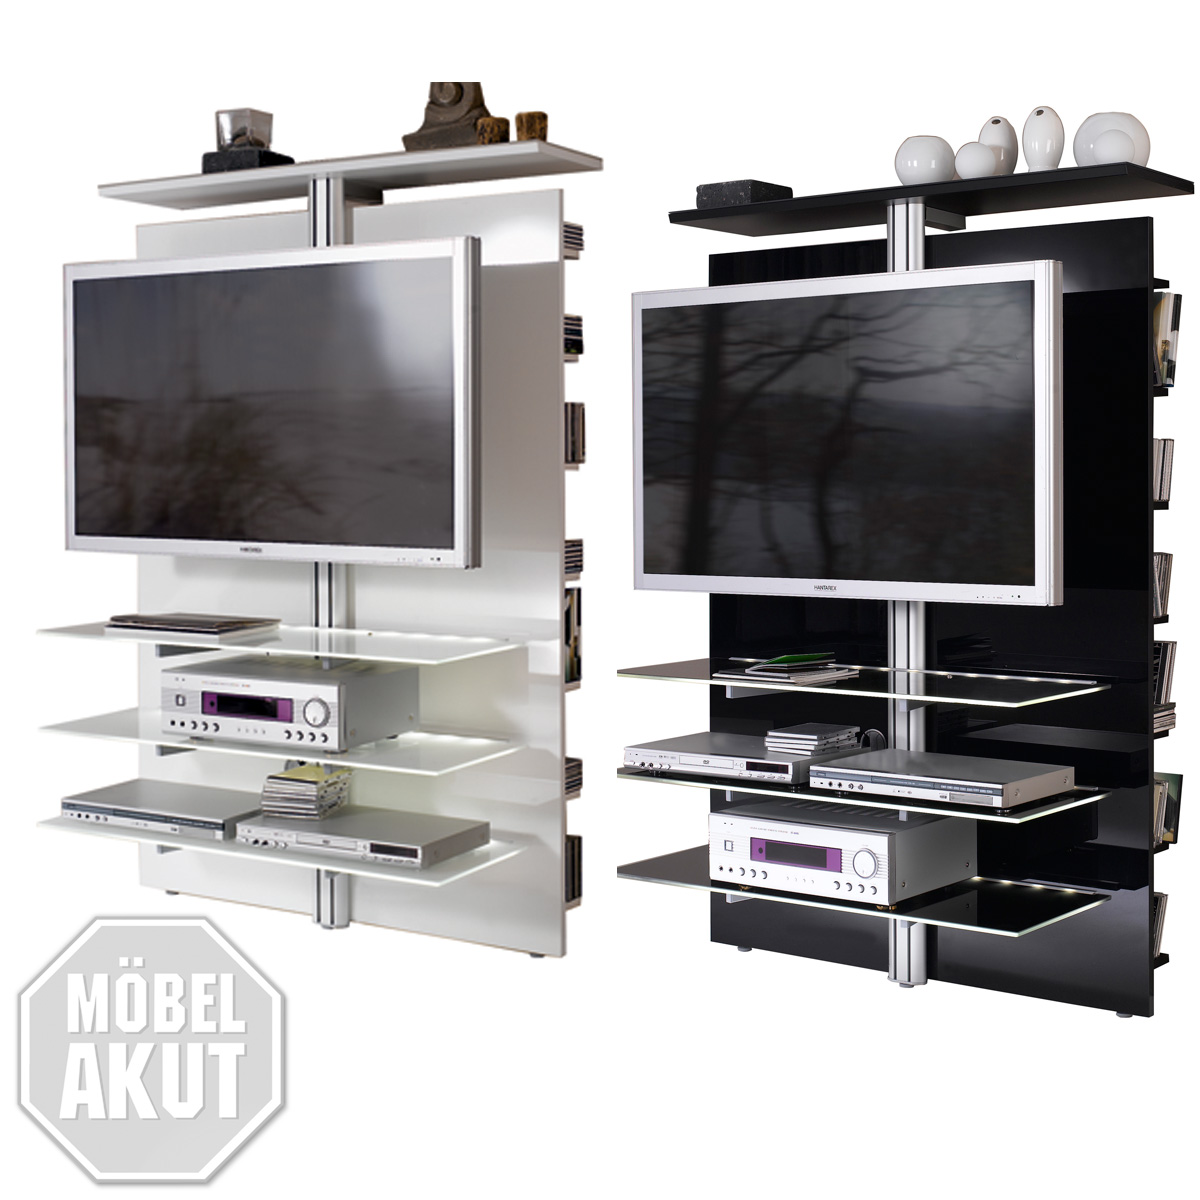 tv wand slc lcd 1900 jahnke media m bel hochglanz in schwarz oder weiss ebay. Black Bedroom Furniture Sets. Home Design Ideas